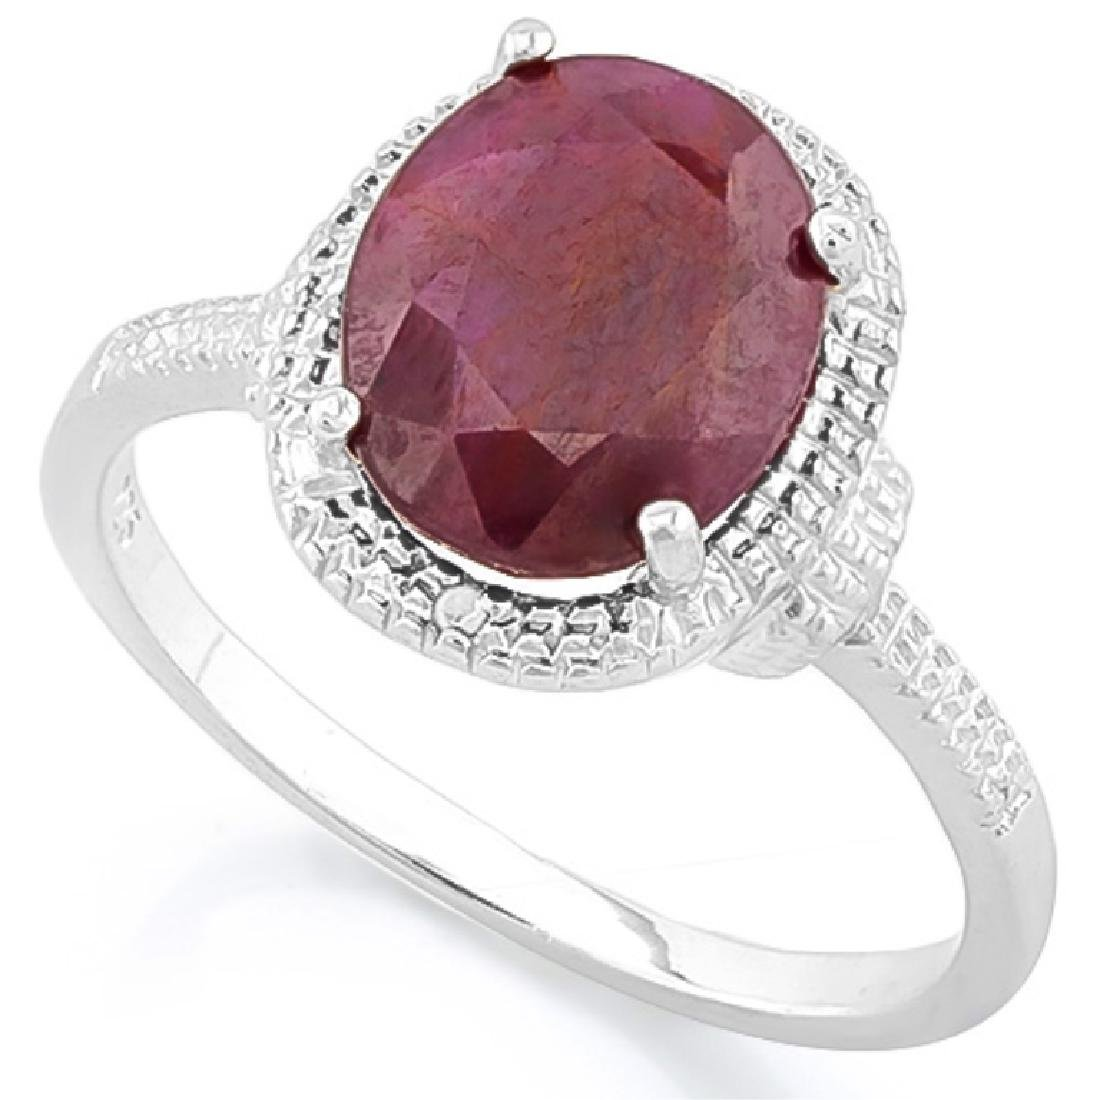 LUXURIOUS 3CT RUBY/DIAMOND STERLING ESTATE RING